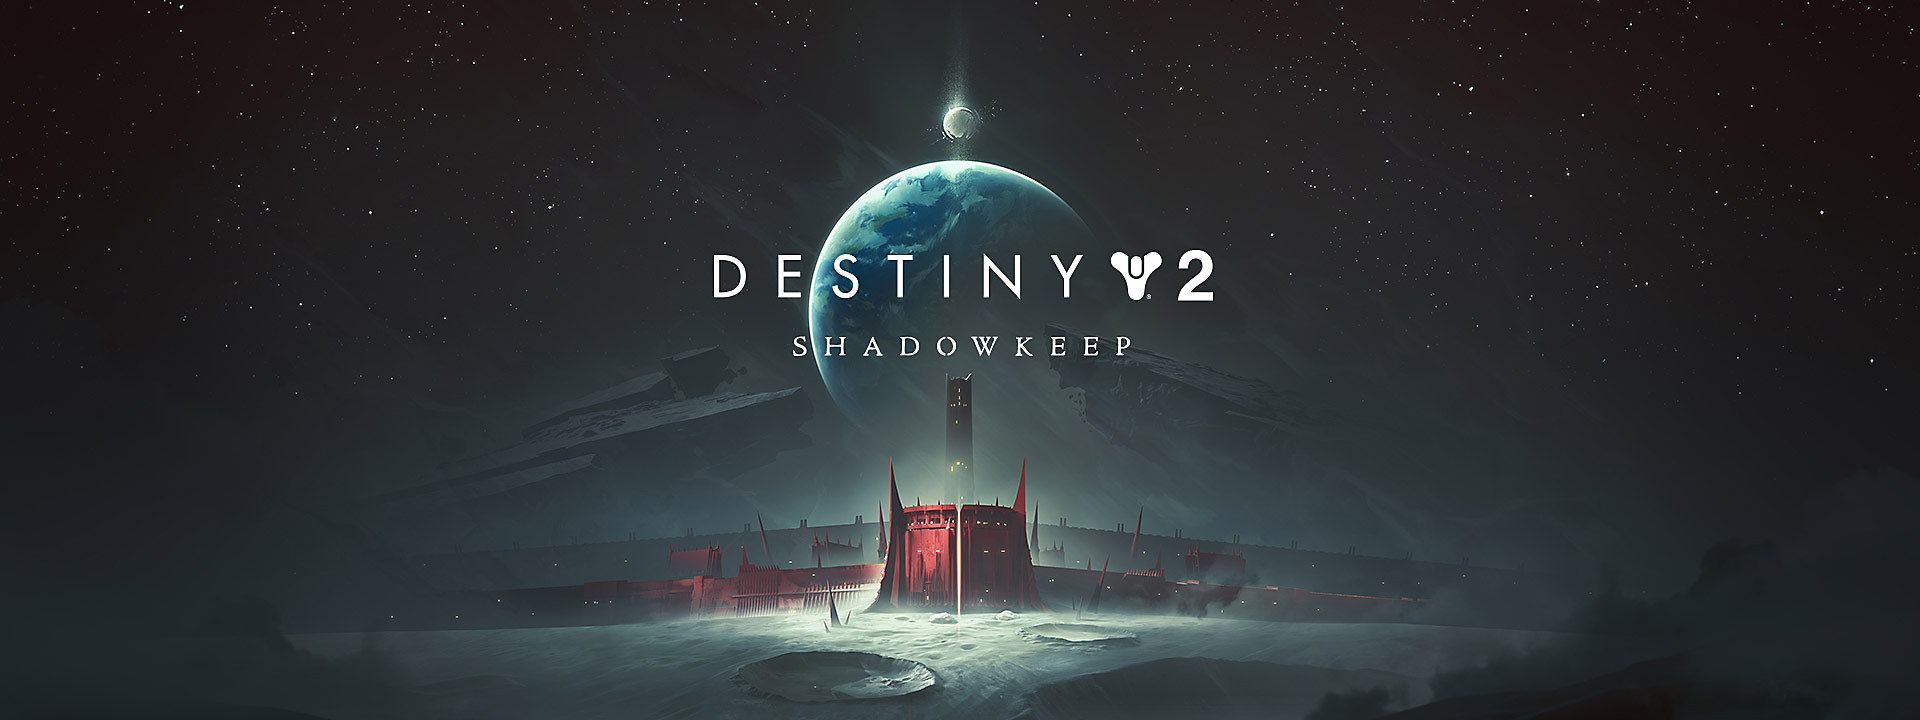 Destiny 2: Shadowkeep - Available Now